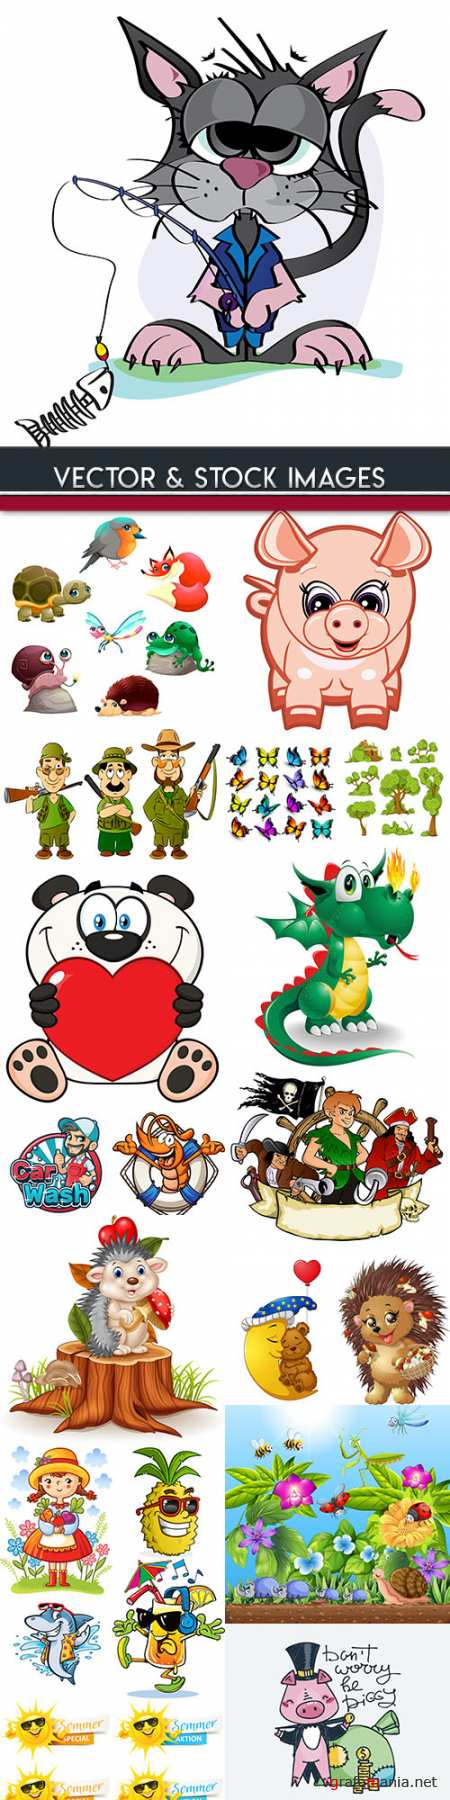 Cartoon amusing characters collection illustrations 6